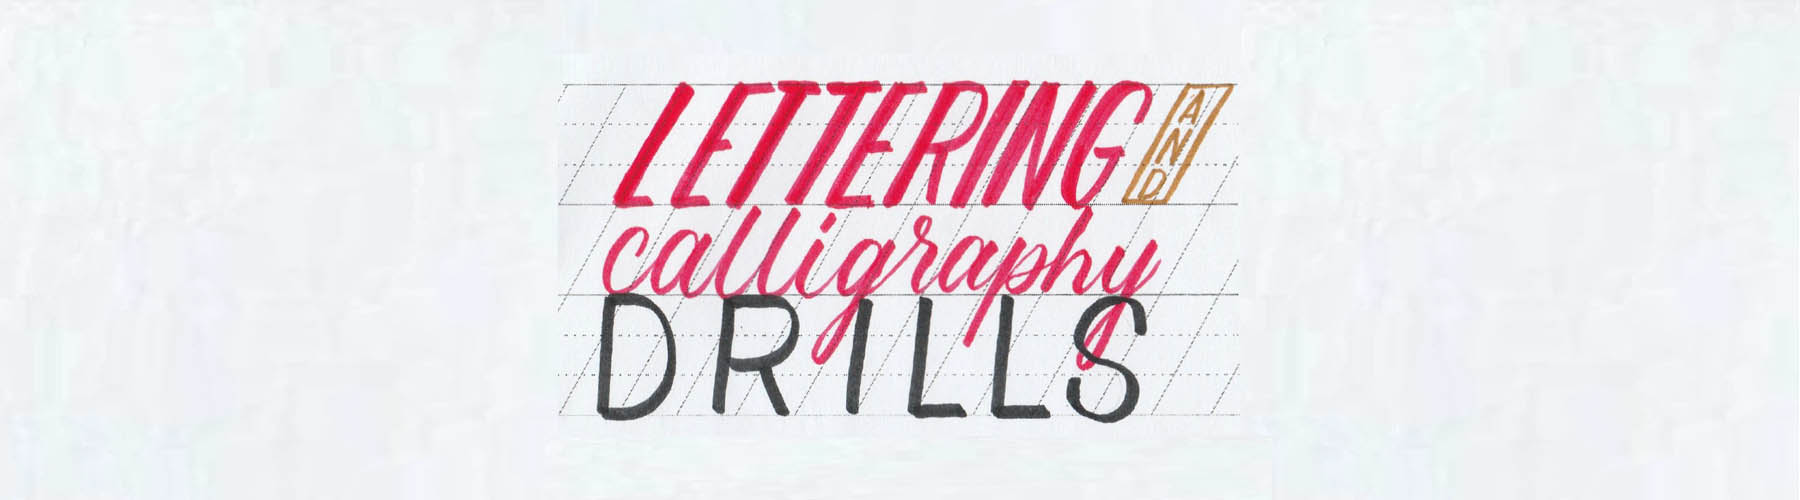 Lettering-and-Calligraphy-DrillsArtboard-1.jpg